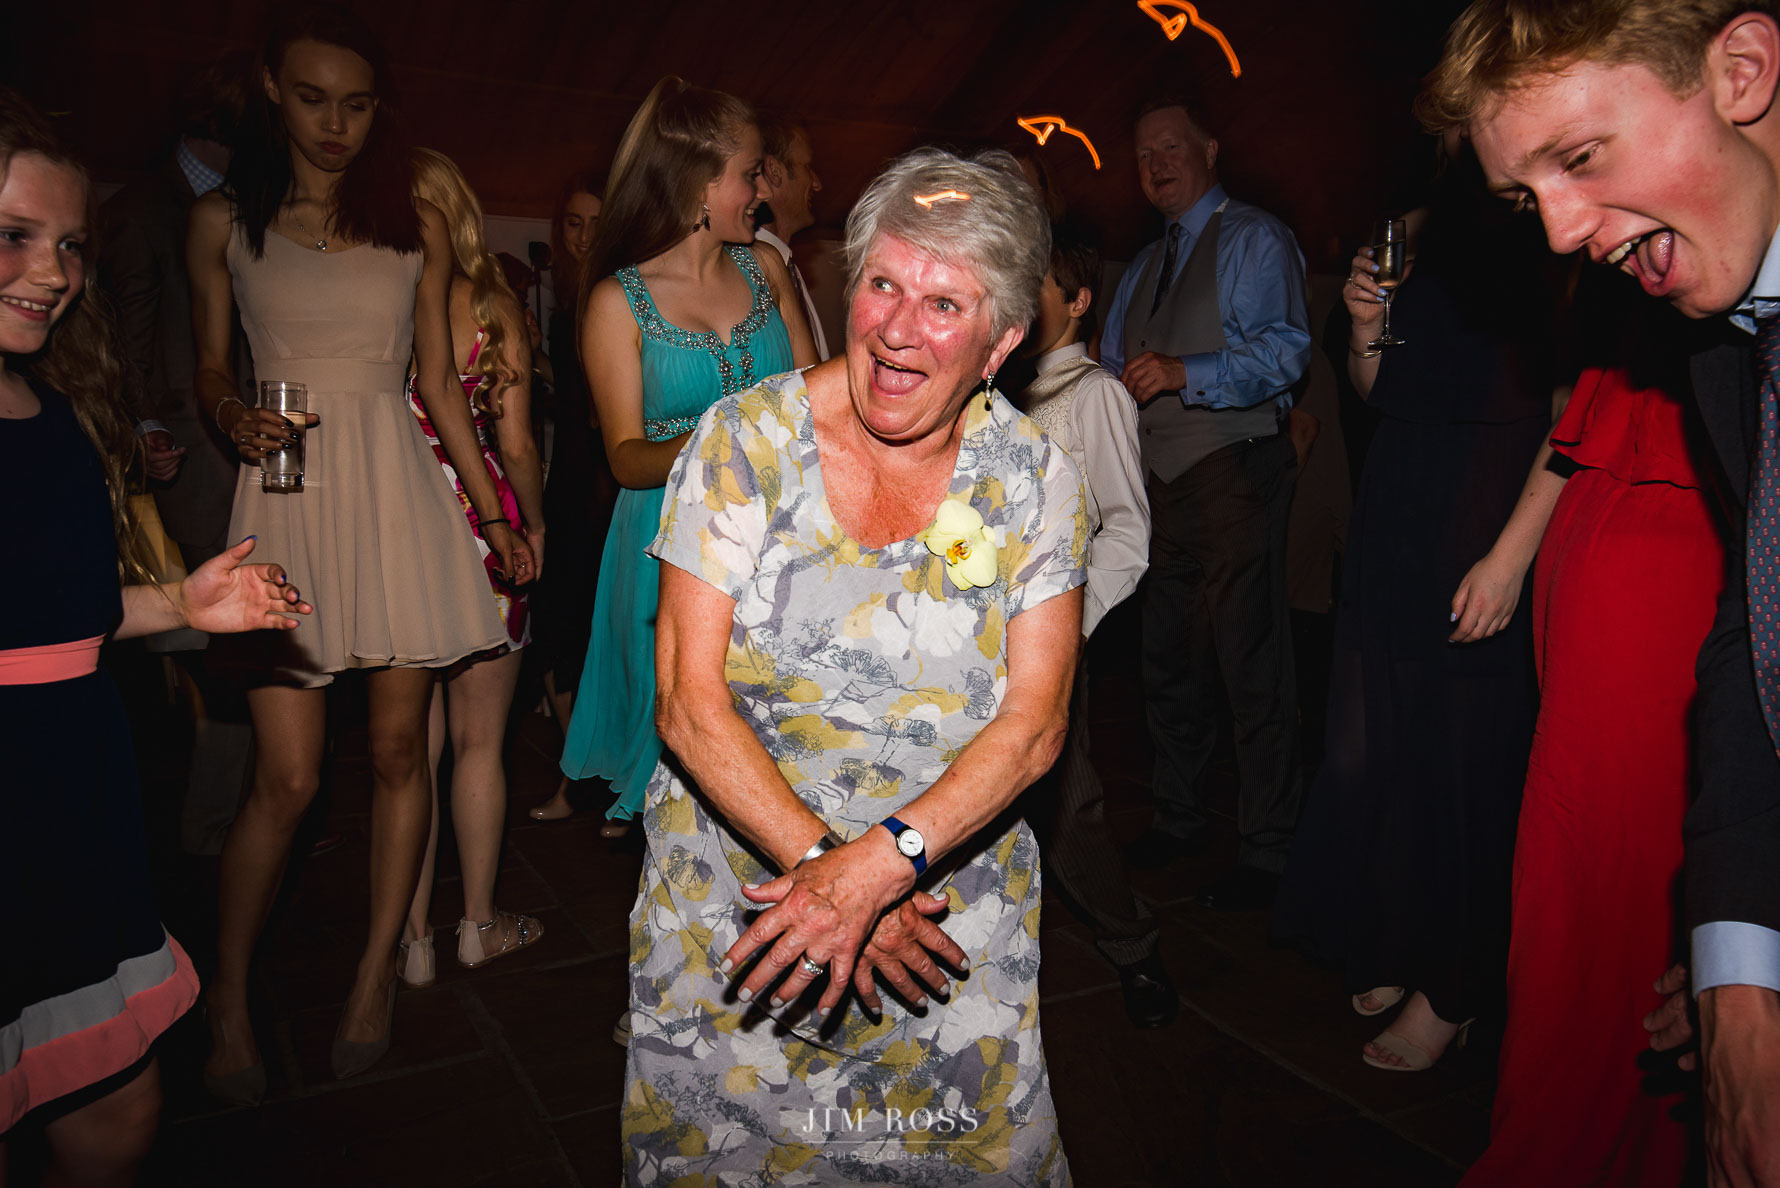 Gran dancing with youngsters